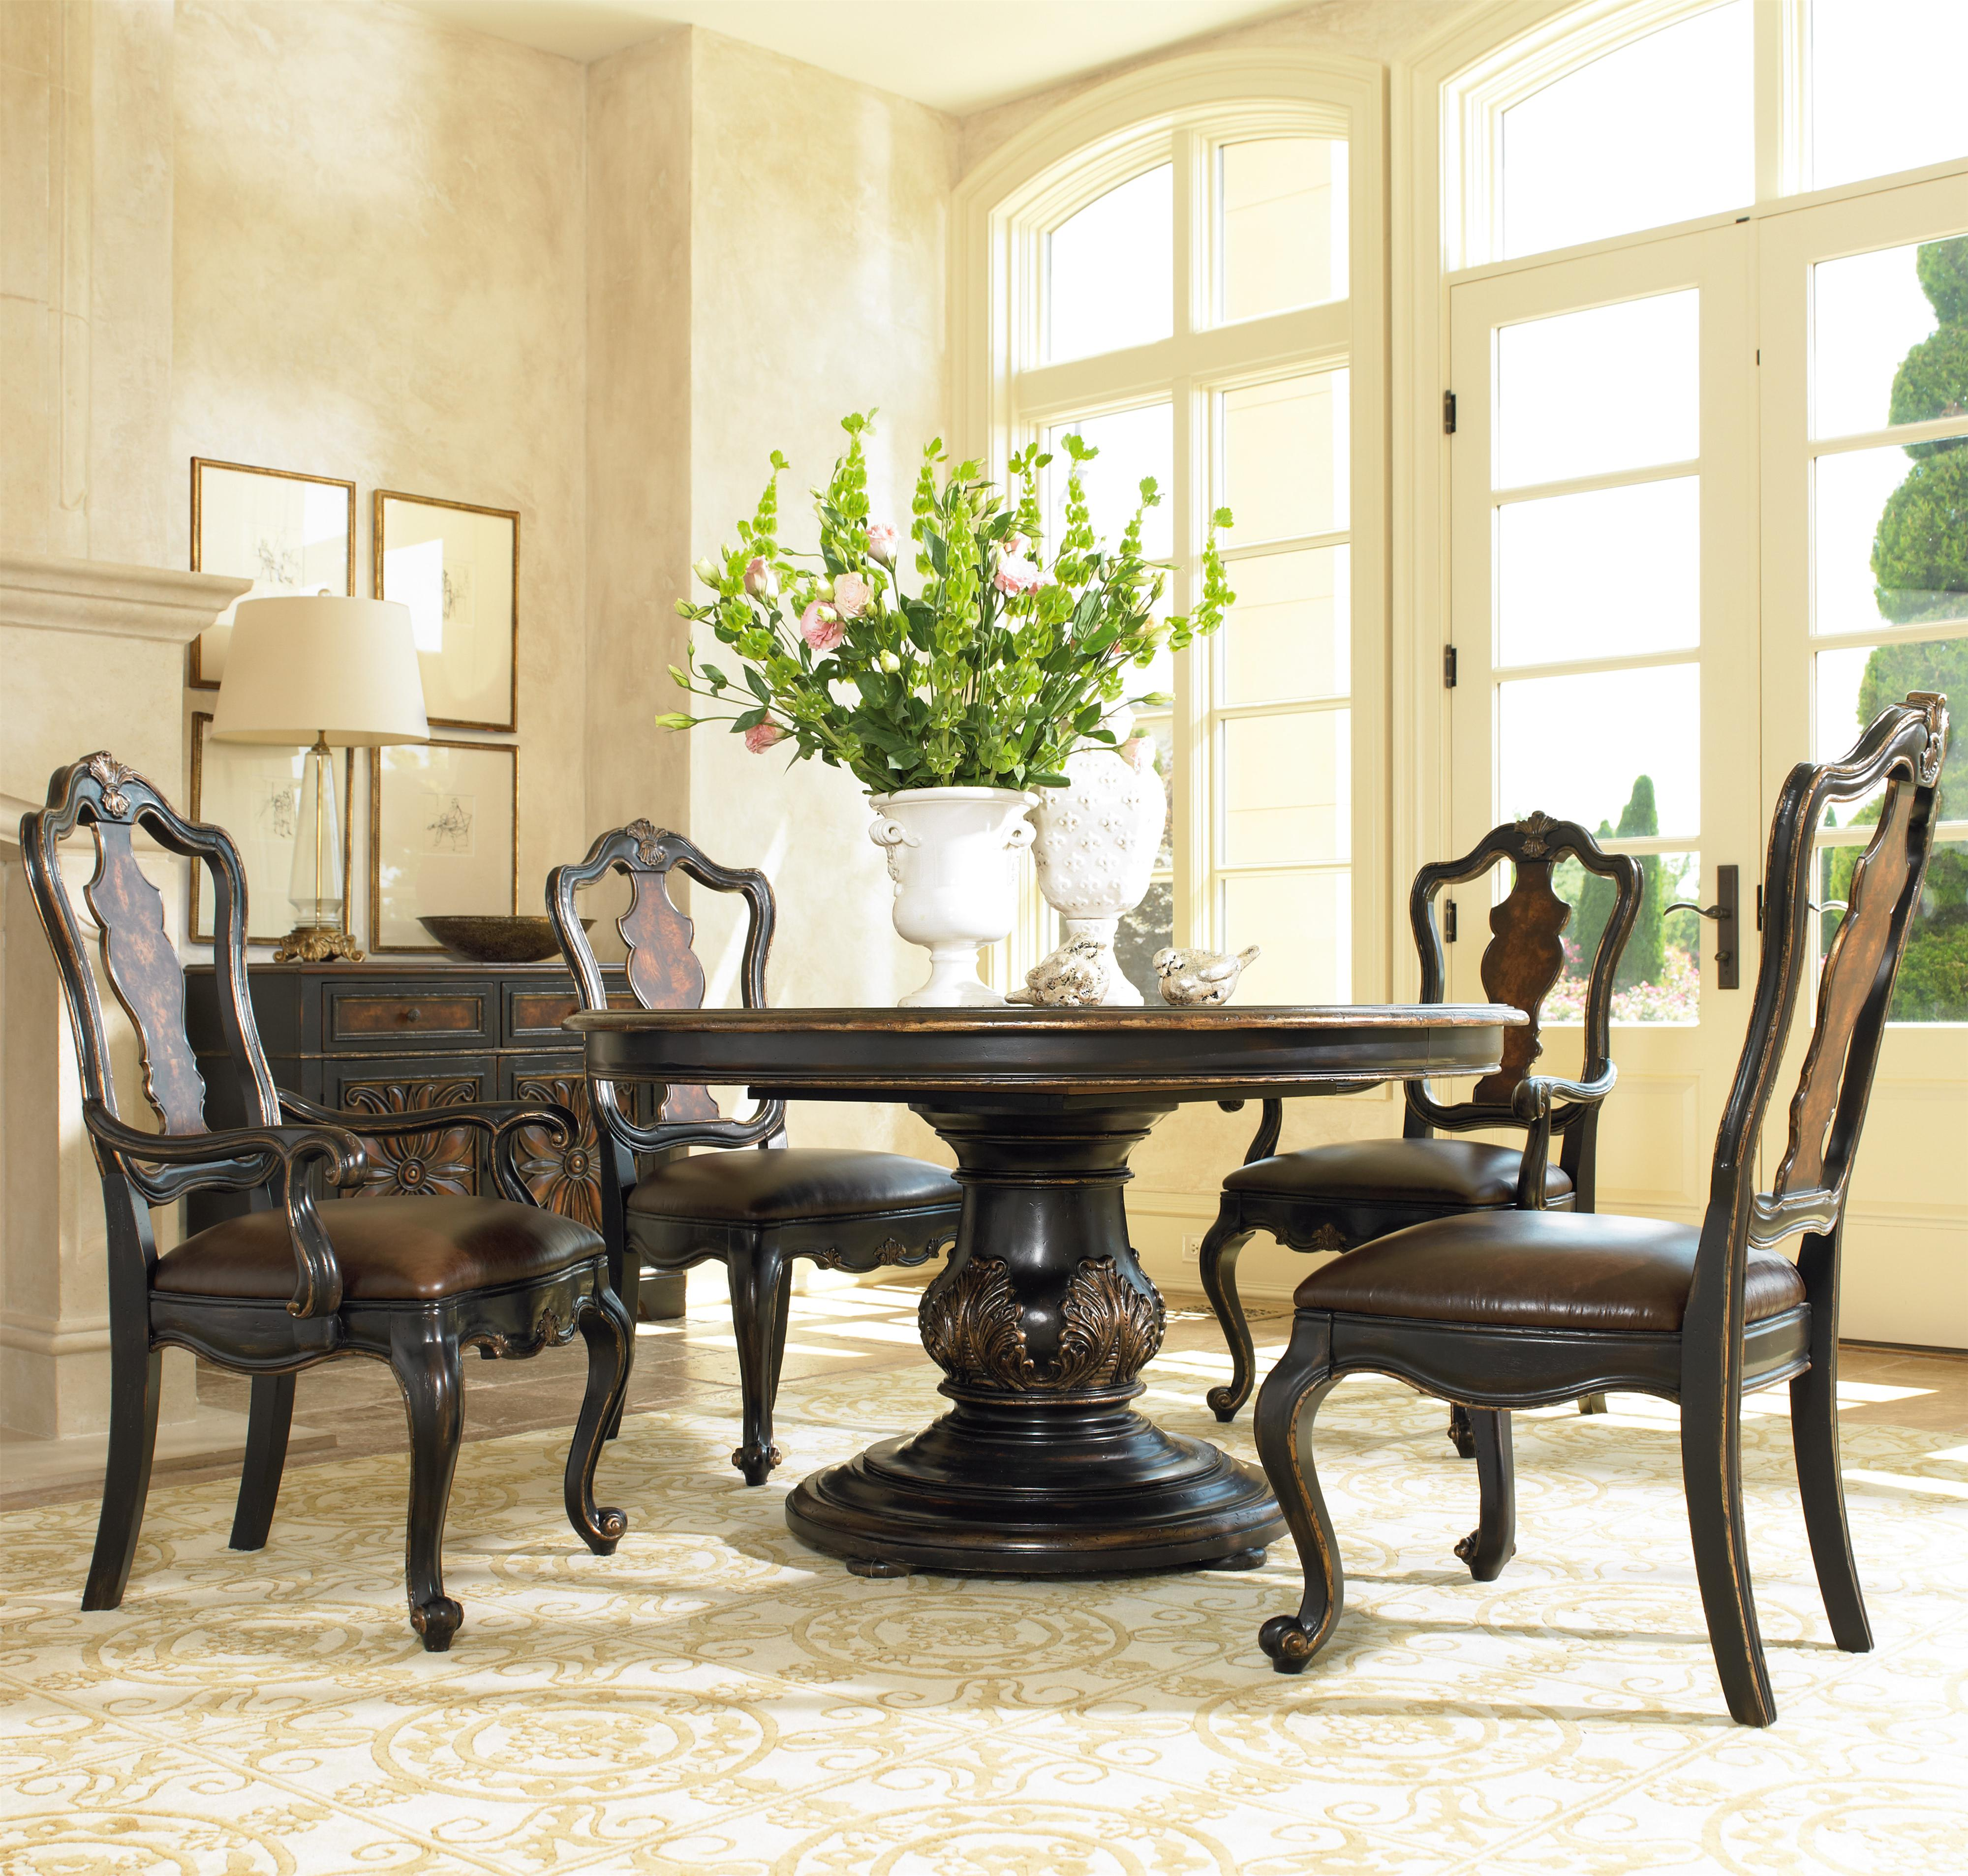 Grandover Five Piece Round Single Pedestal Dining Table Splatback Chairs With Upholstered Seats Set By Hooker Furniture